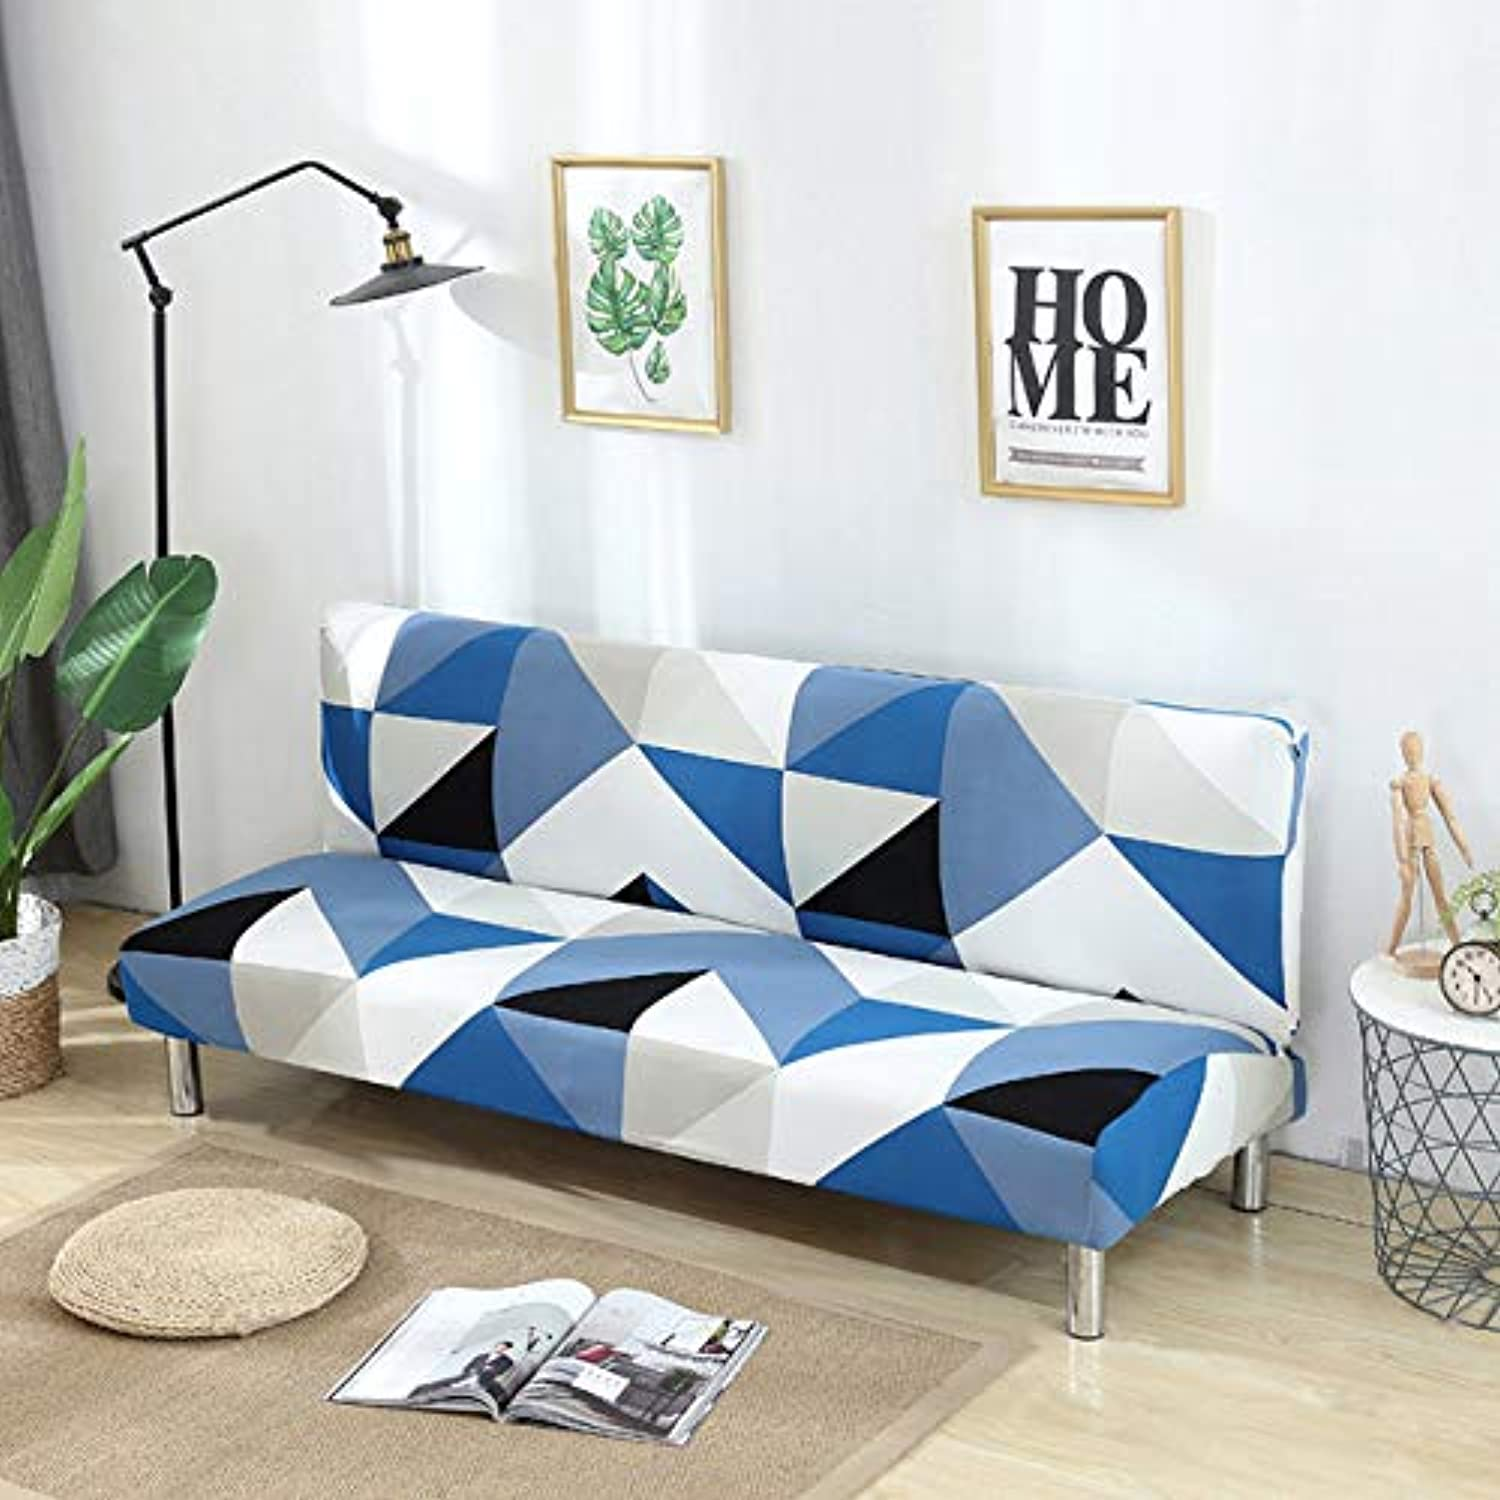 Elastic Sofa Cover Without Armrests All-Inclusive Slipcover Slip-Resistant Couch Covers for Living Room Stretch Furniture Covers   color 2, 160 to195cm